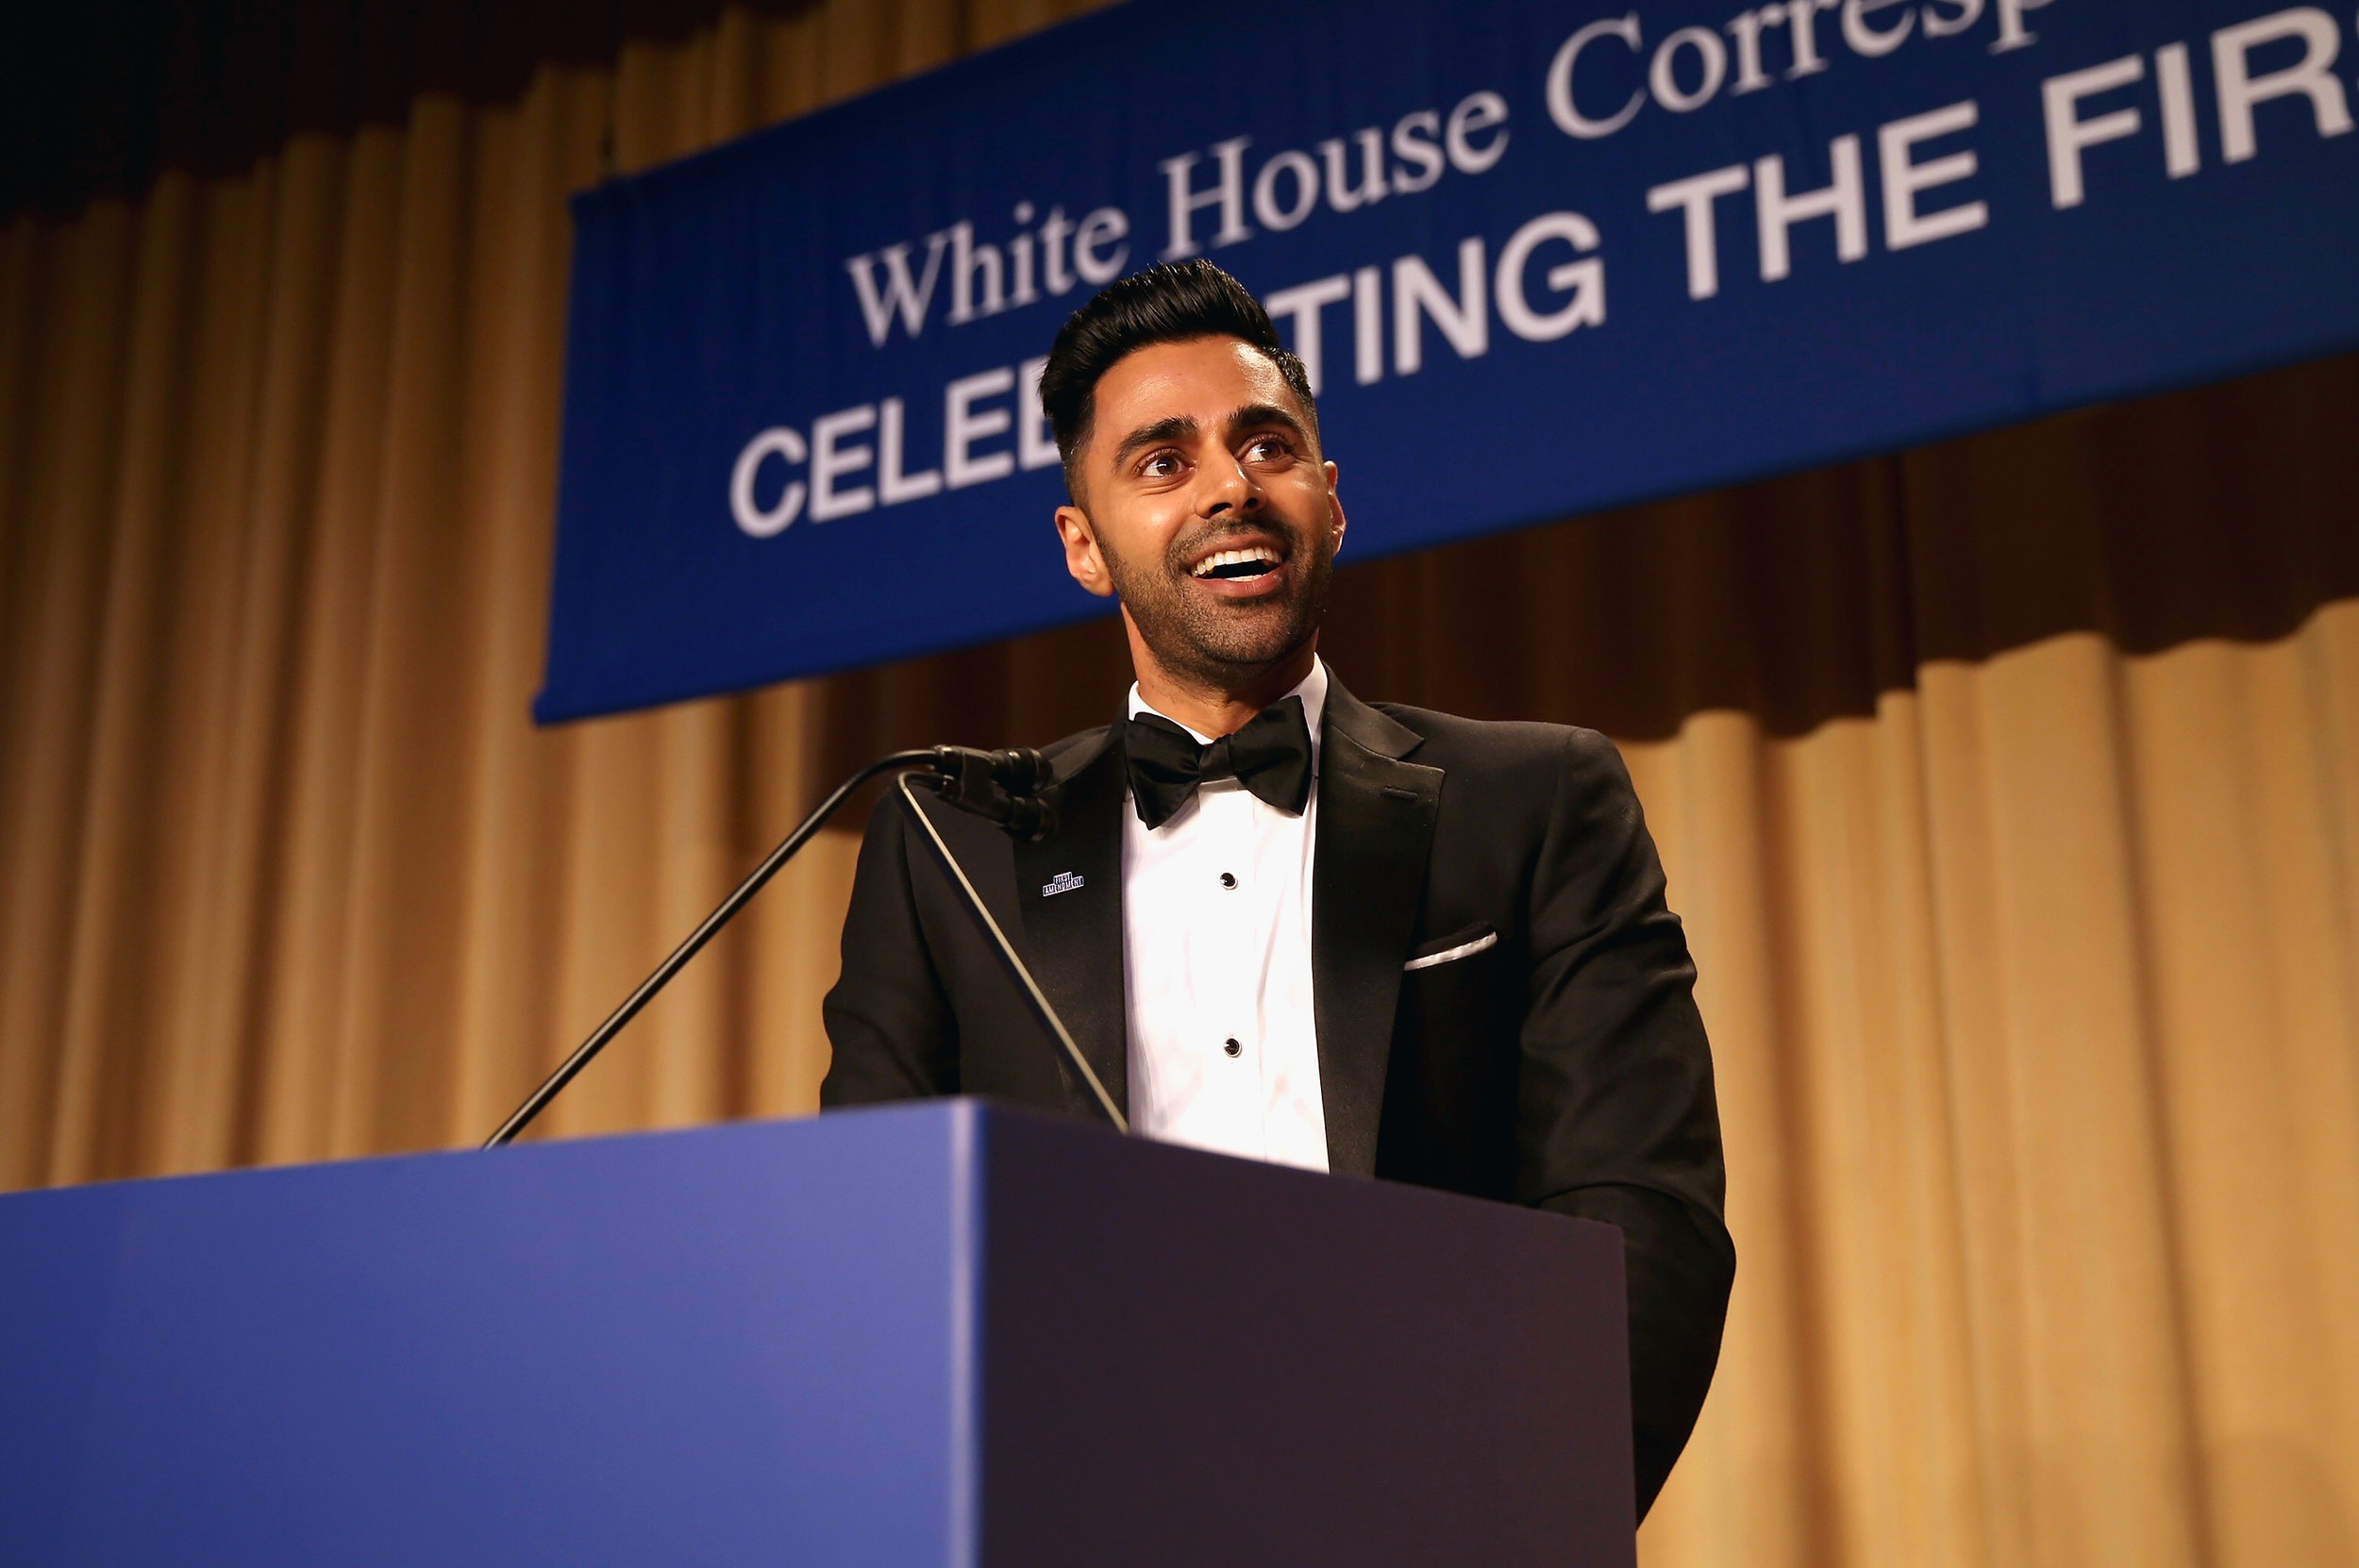 The Best Moments from Hasan Mihnaj's Speech at the 2017 White House Correspondents' Dinner